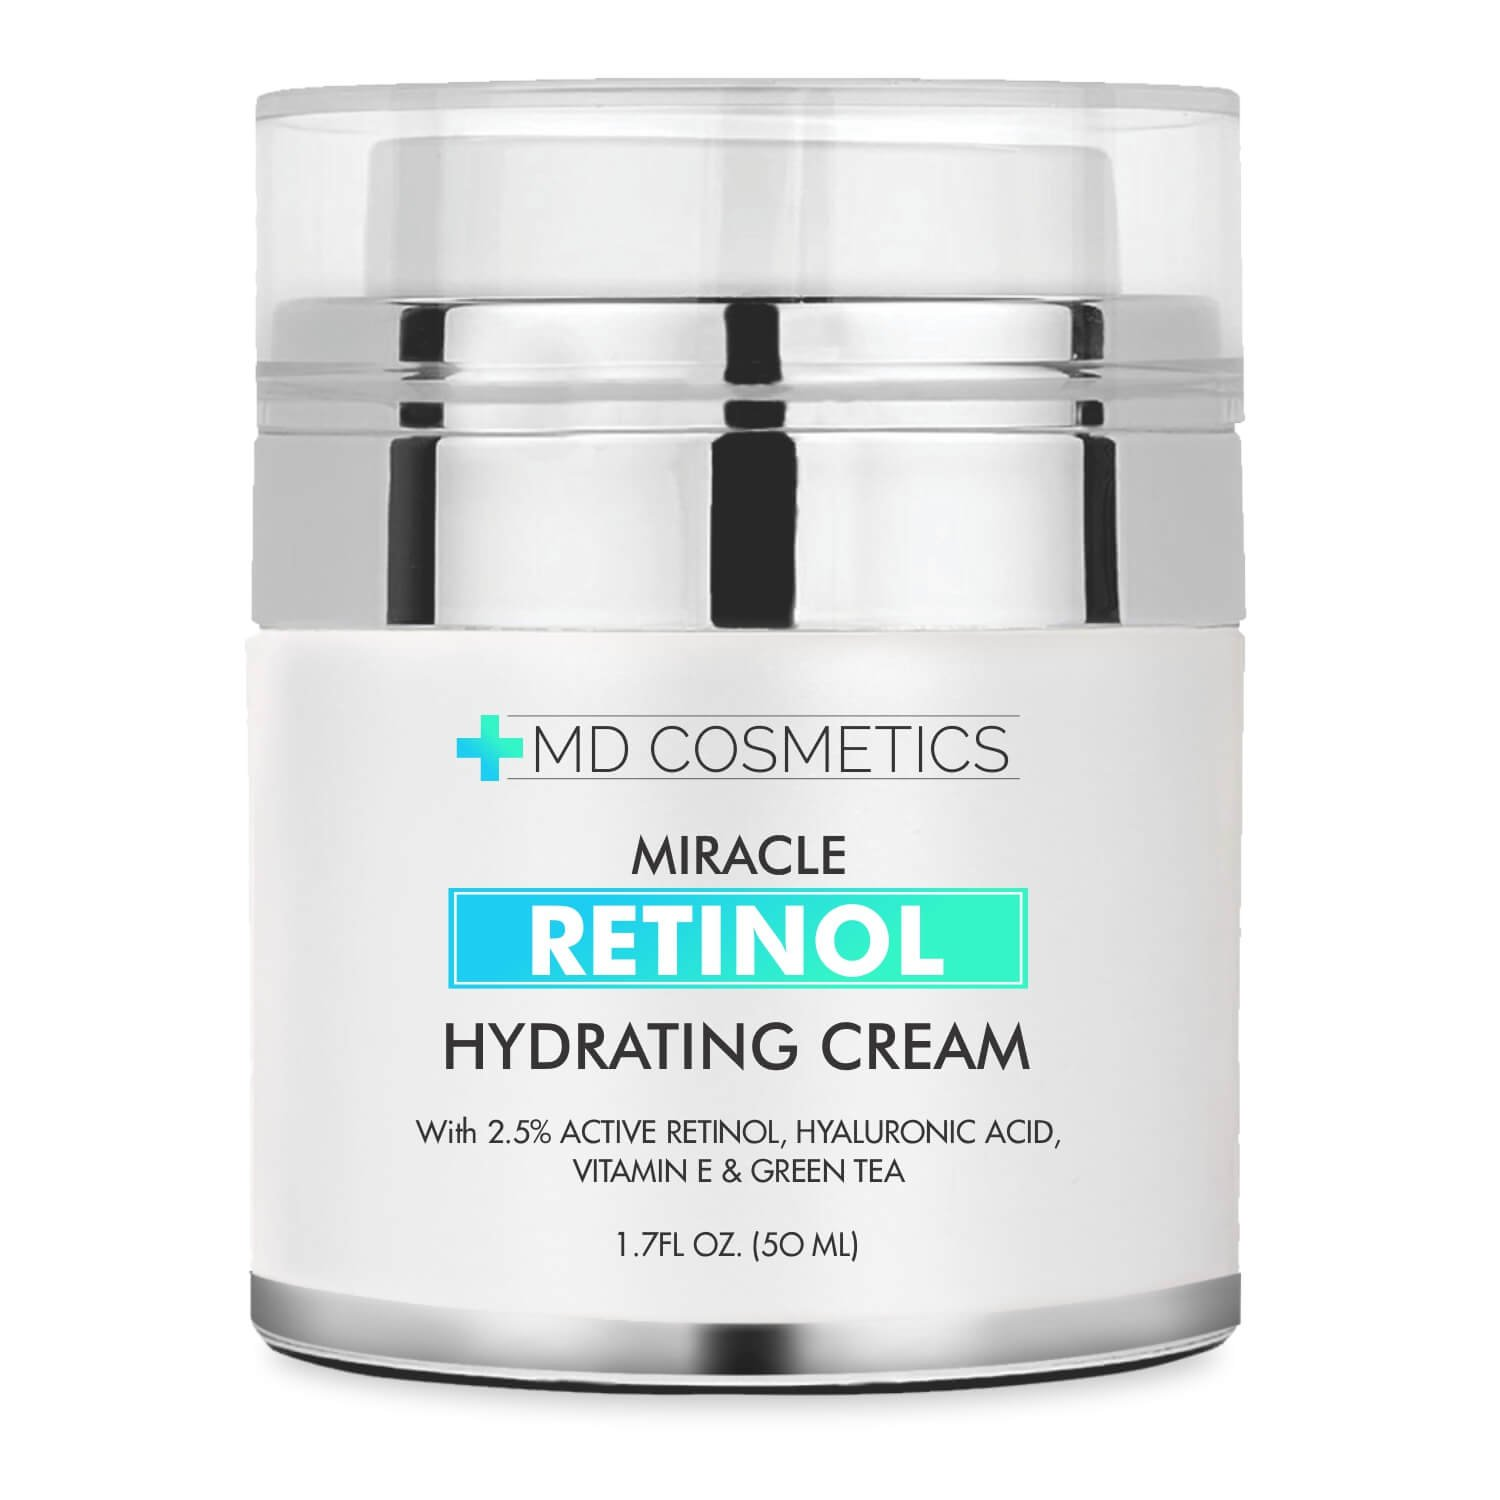 MD Cosmetics Retinol Moisturizer Cream for Face and Eye Area - With Retinol, Hyaluronic Acid, VITAMIN E & Green Tea. Night and Day Moisturizing Cream